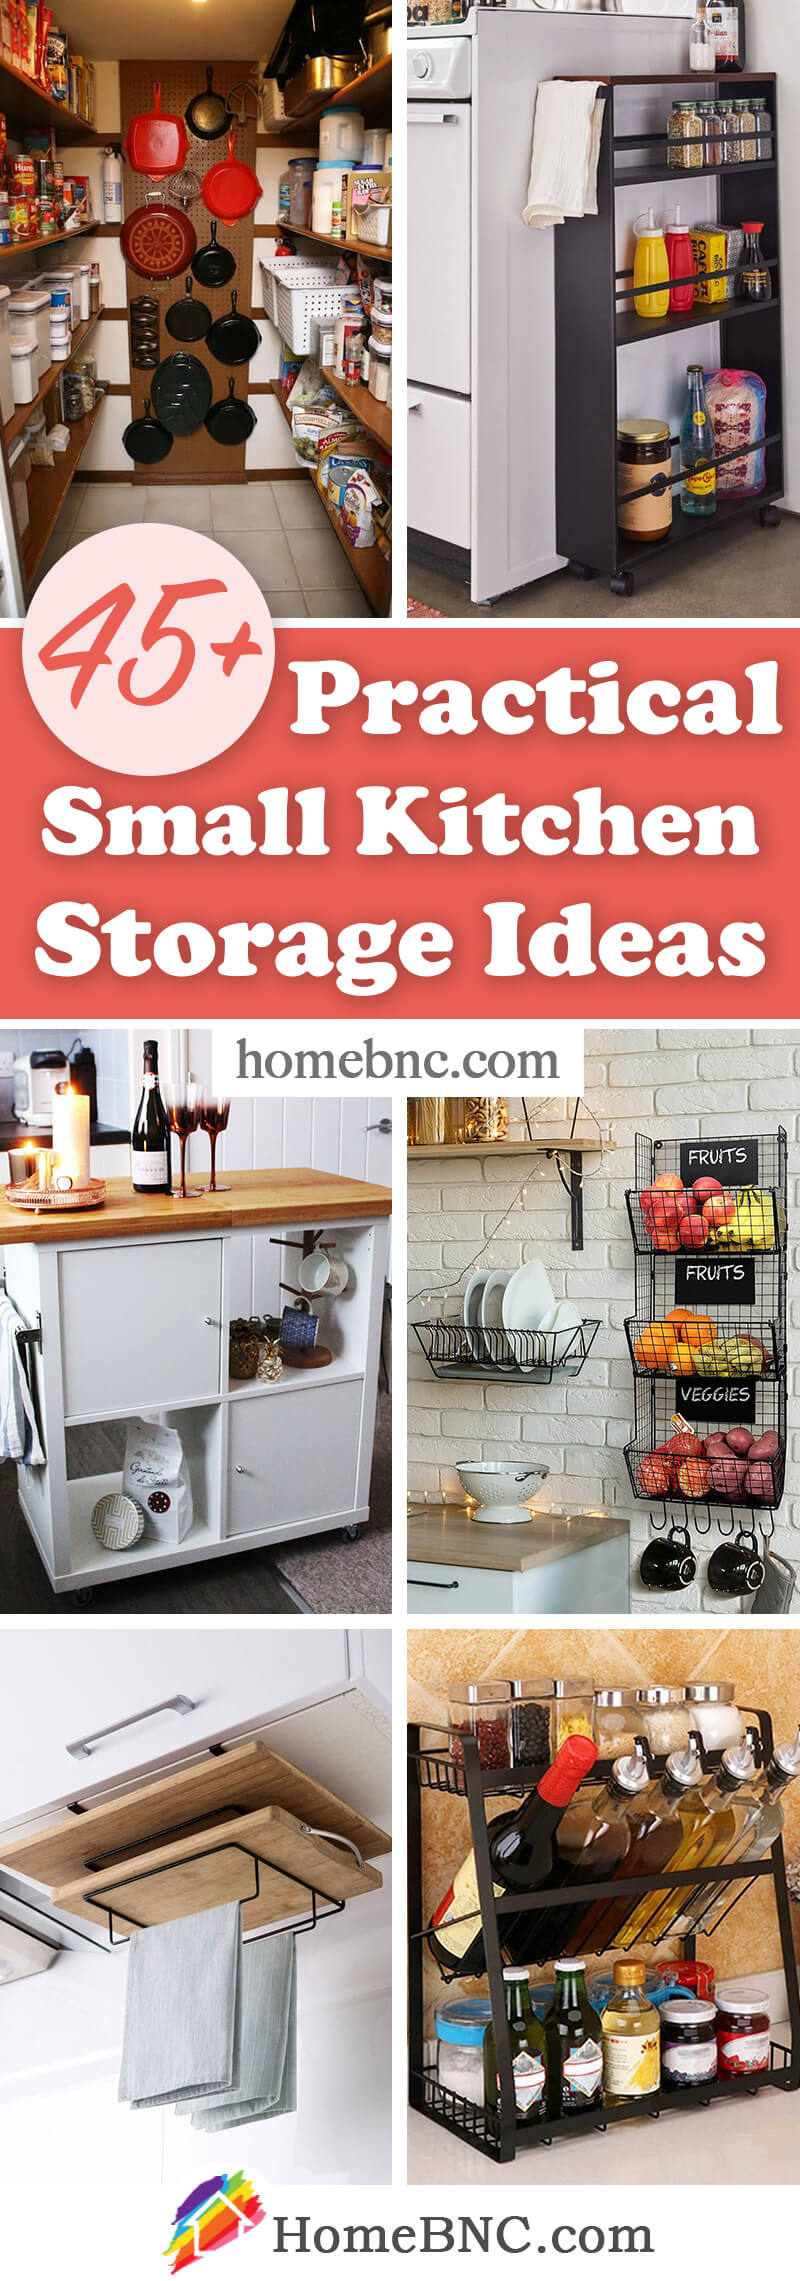 45 Best Small Kitchen Storage Organization Ideas And Designs For 2021